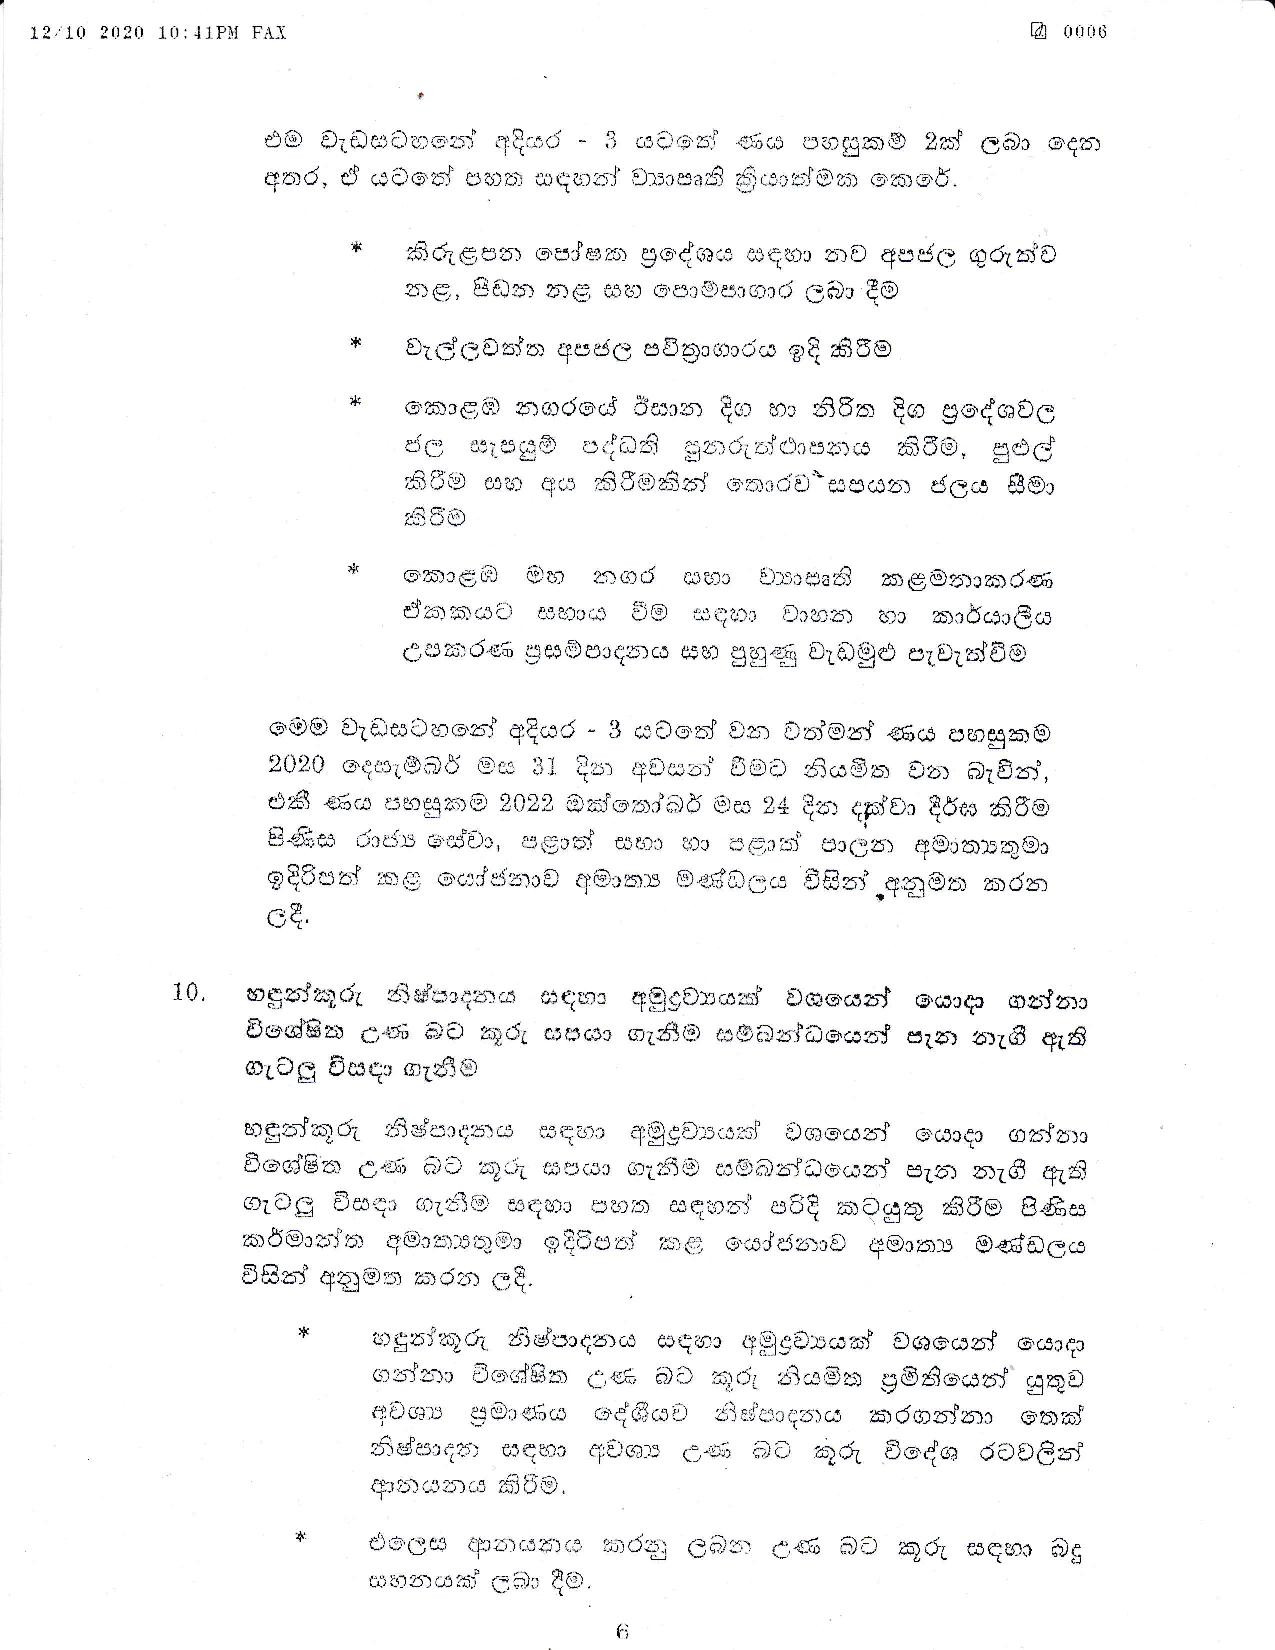 Cabinet Decision on 12.10.2020 page 006